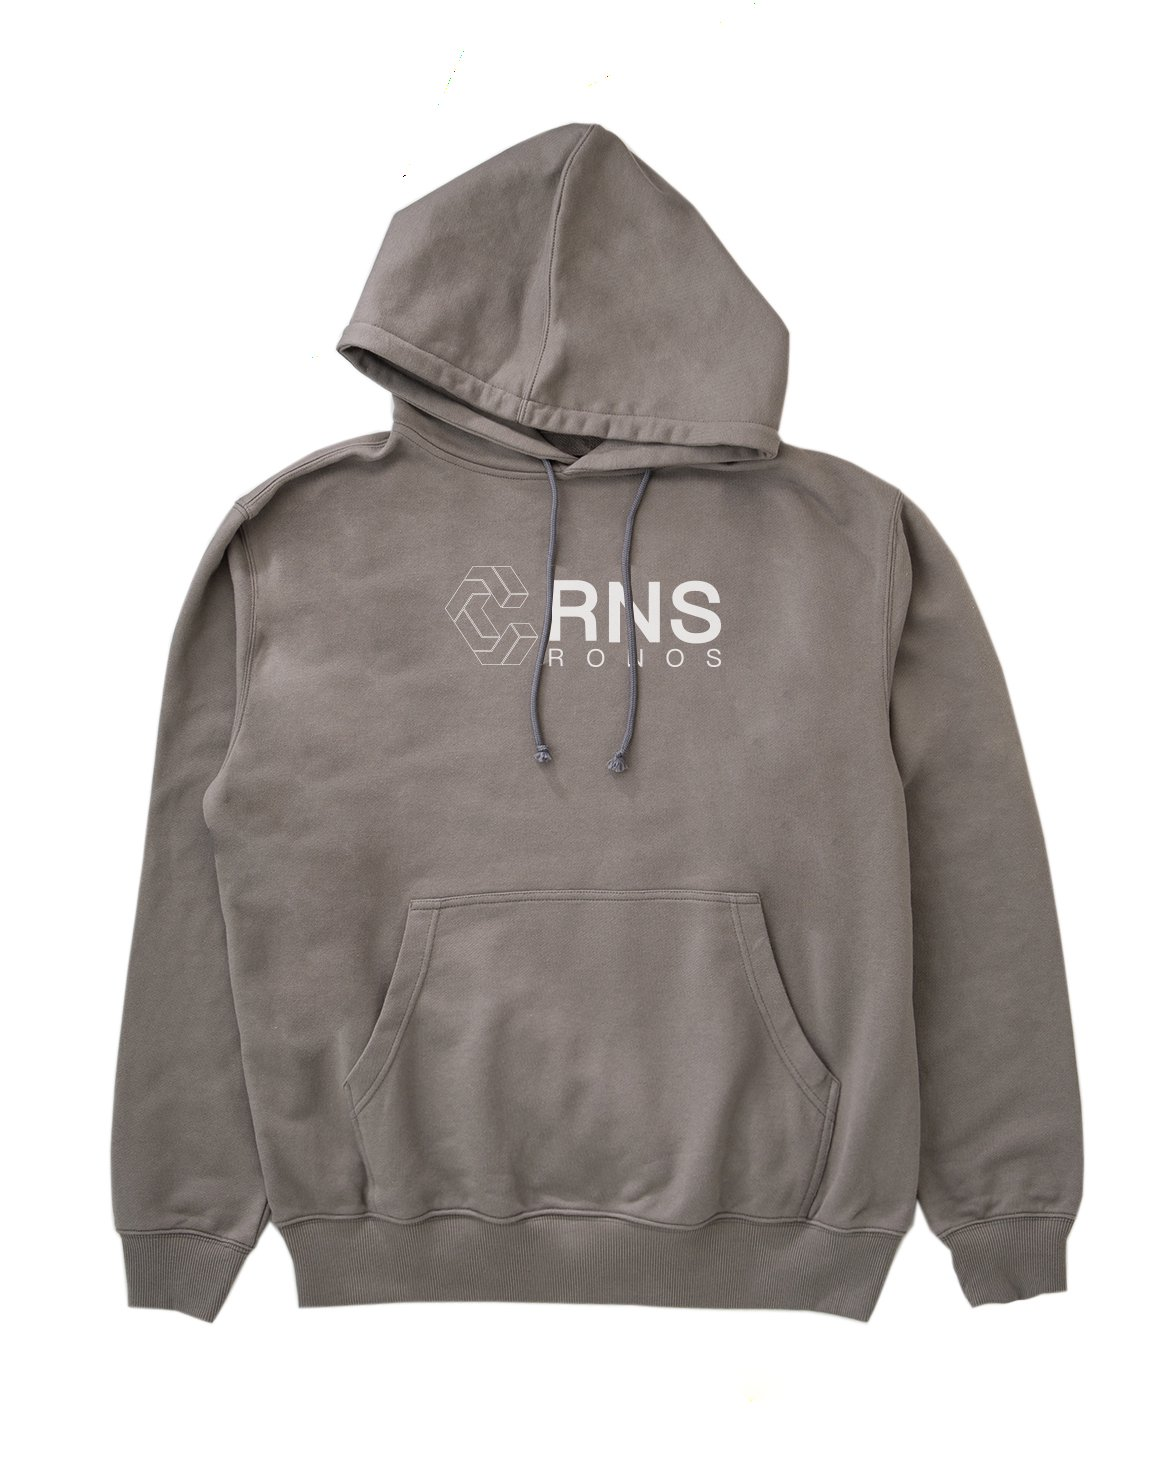 <img class='new_mark_img1' src='https://img.shop-pro.jp/img/new/icons1.gif' style='border:none;display:inline;margin:0px;padding:0px;width:auto;' />CRNS FONT LOGO  PARKA 【GRAY】